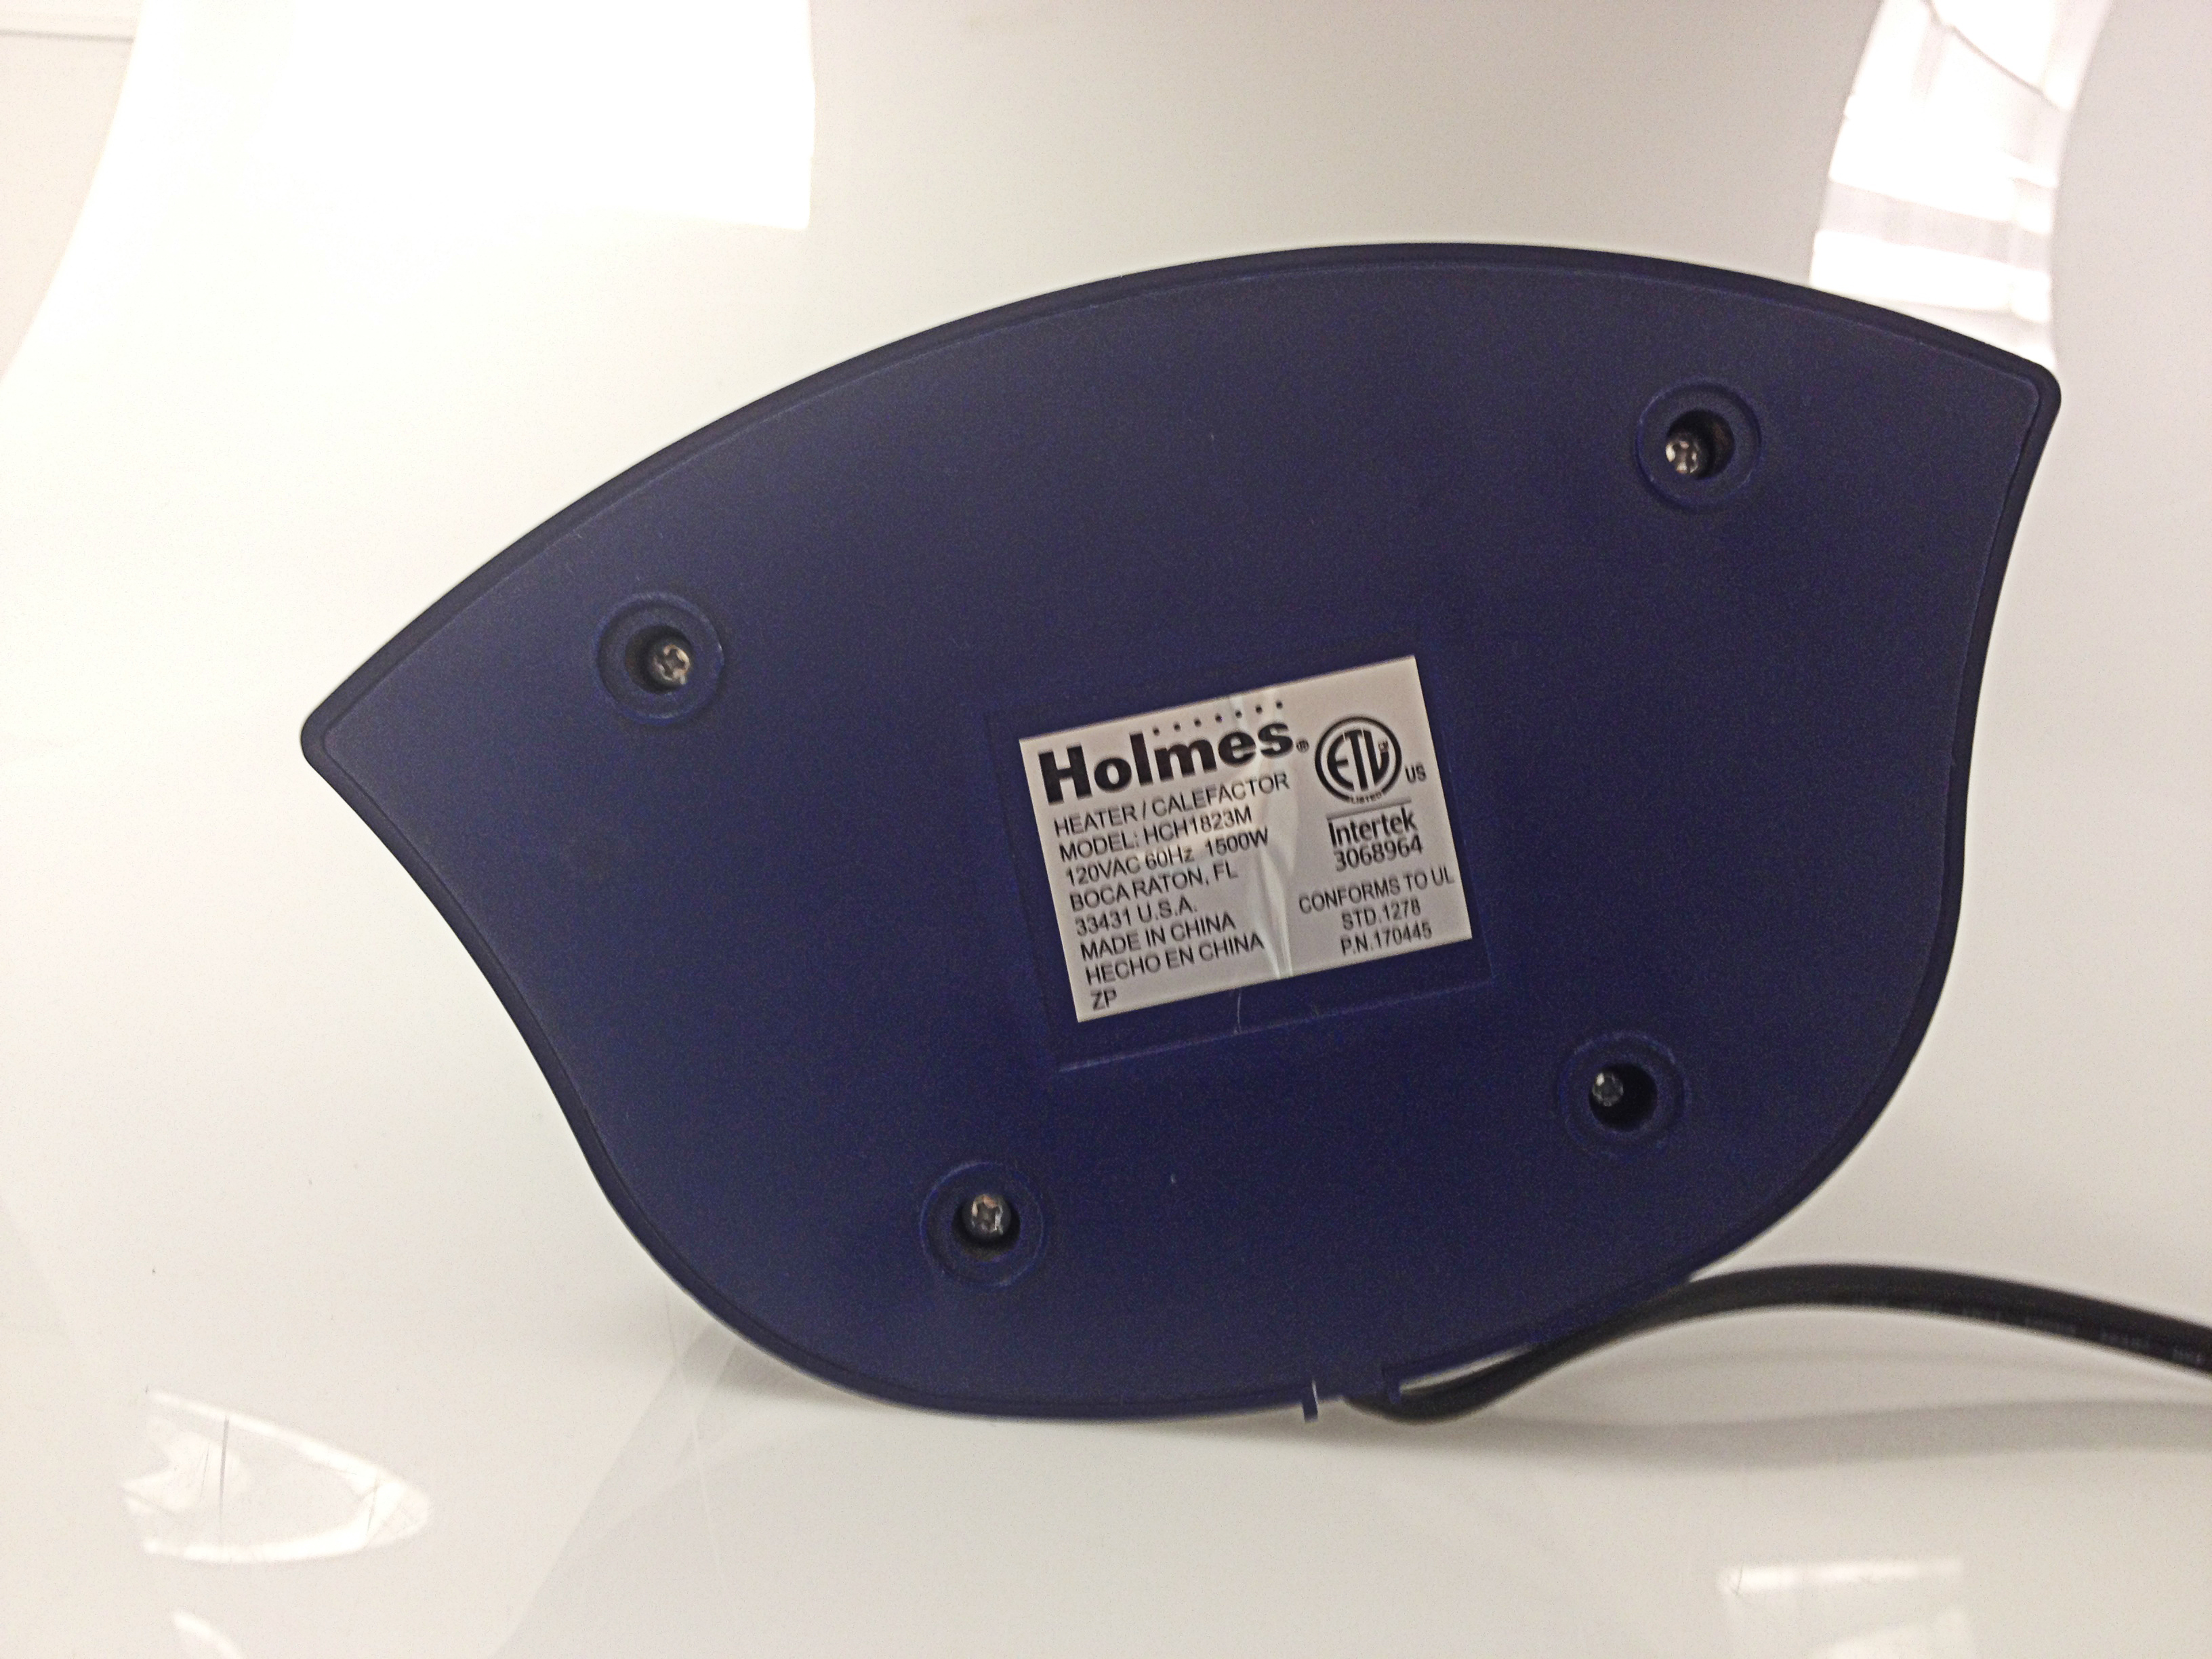 Holmes Ceramic Heater Model Number Location